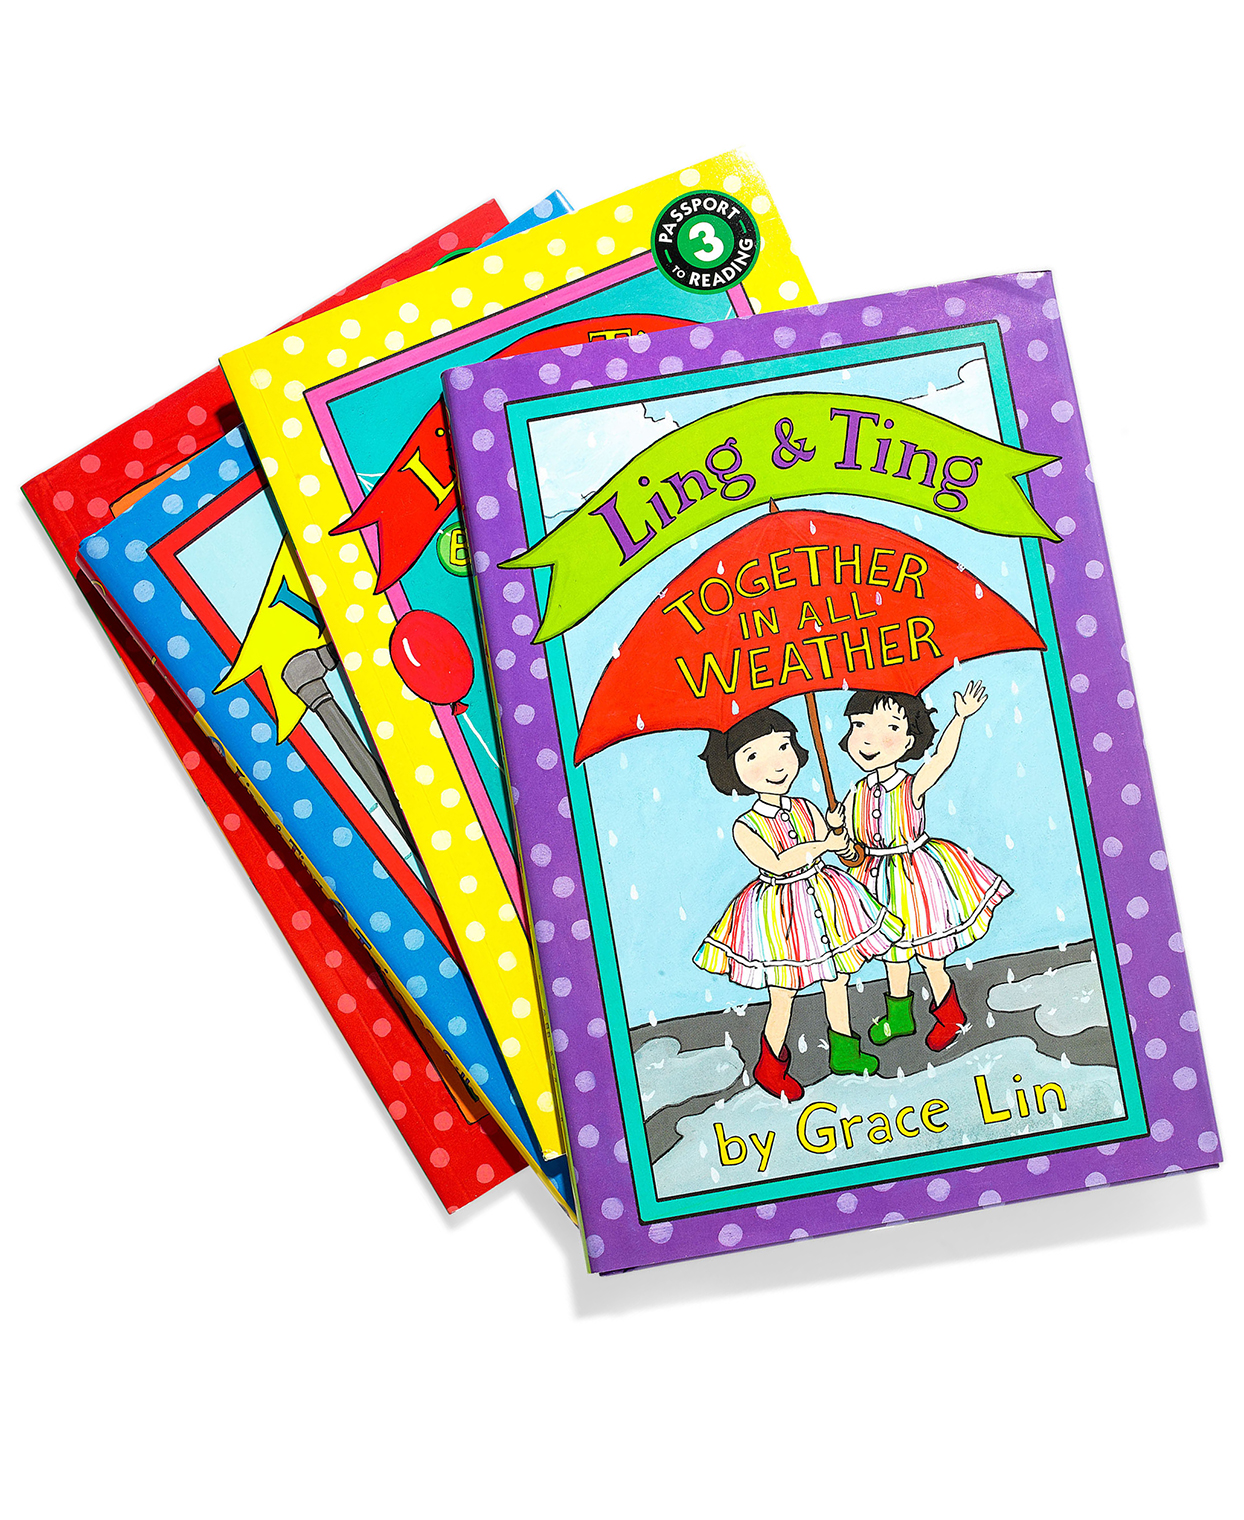 ling and ting colorful children's books for siblings